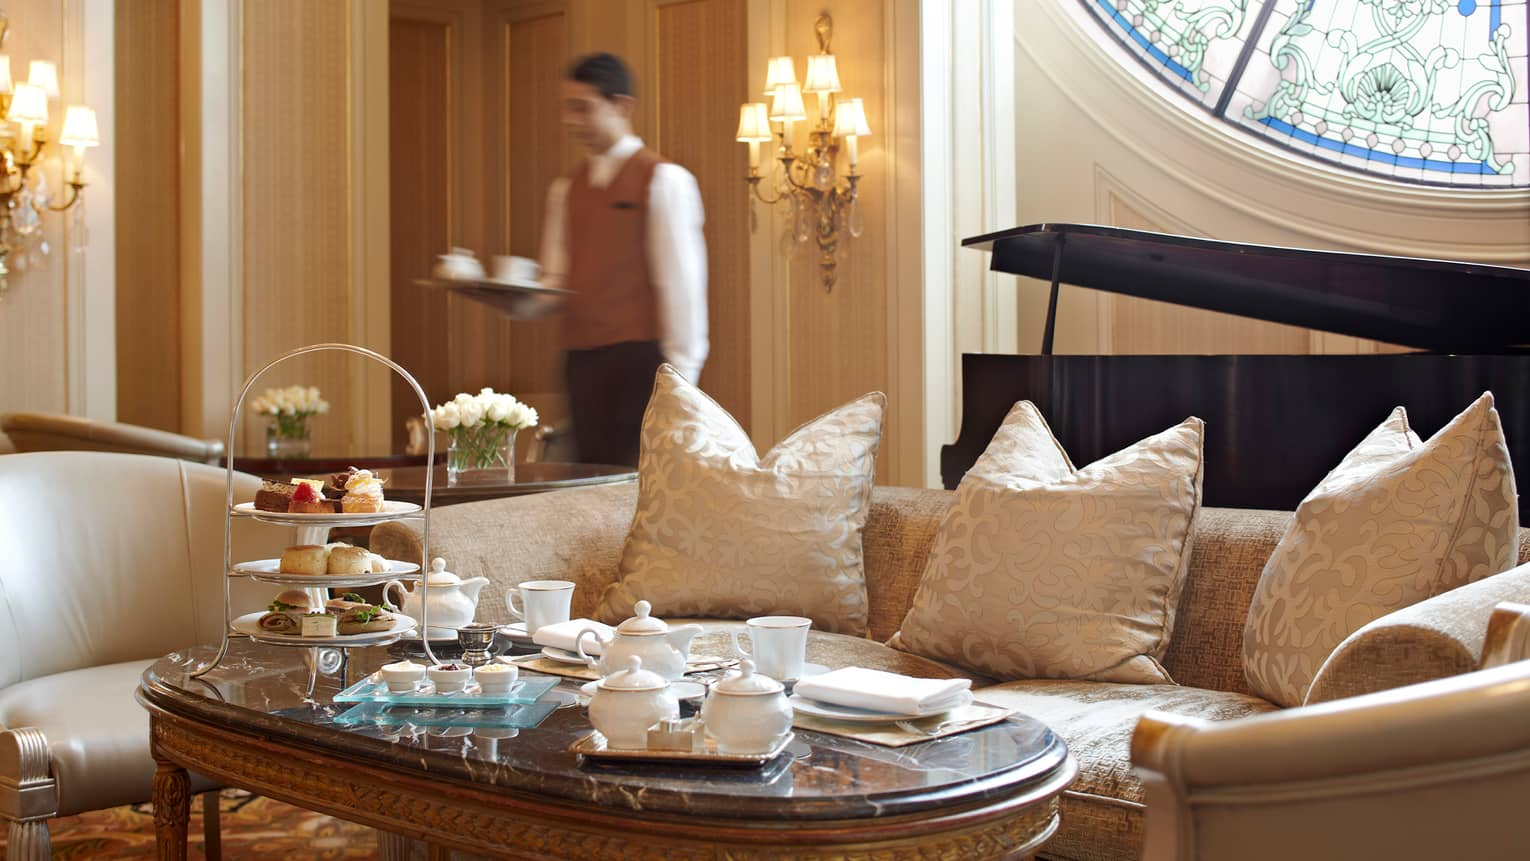 Formal tea service, sandwiches and dessert on table in front of white satin sofa